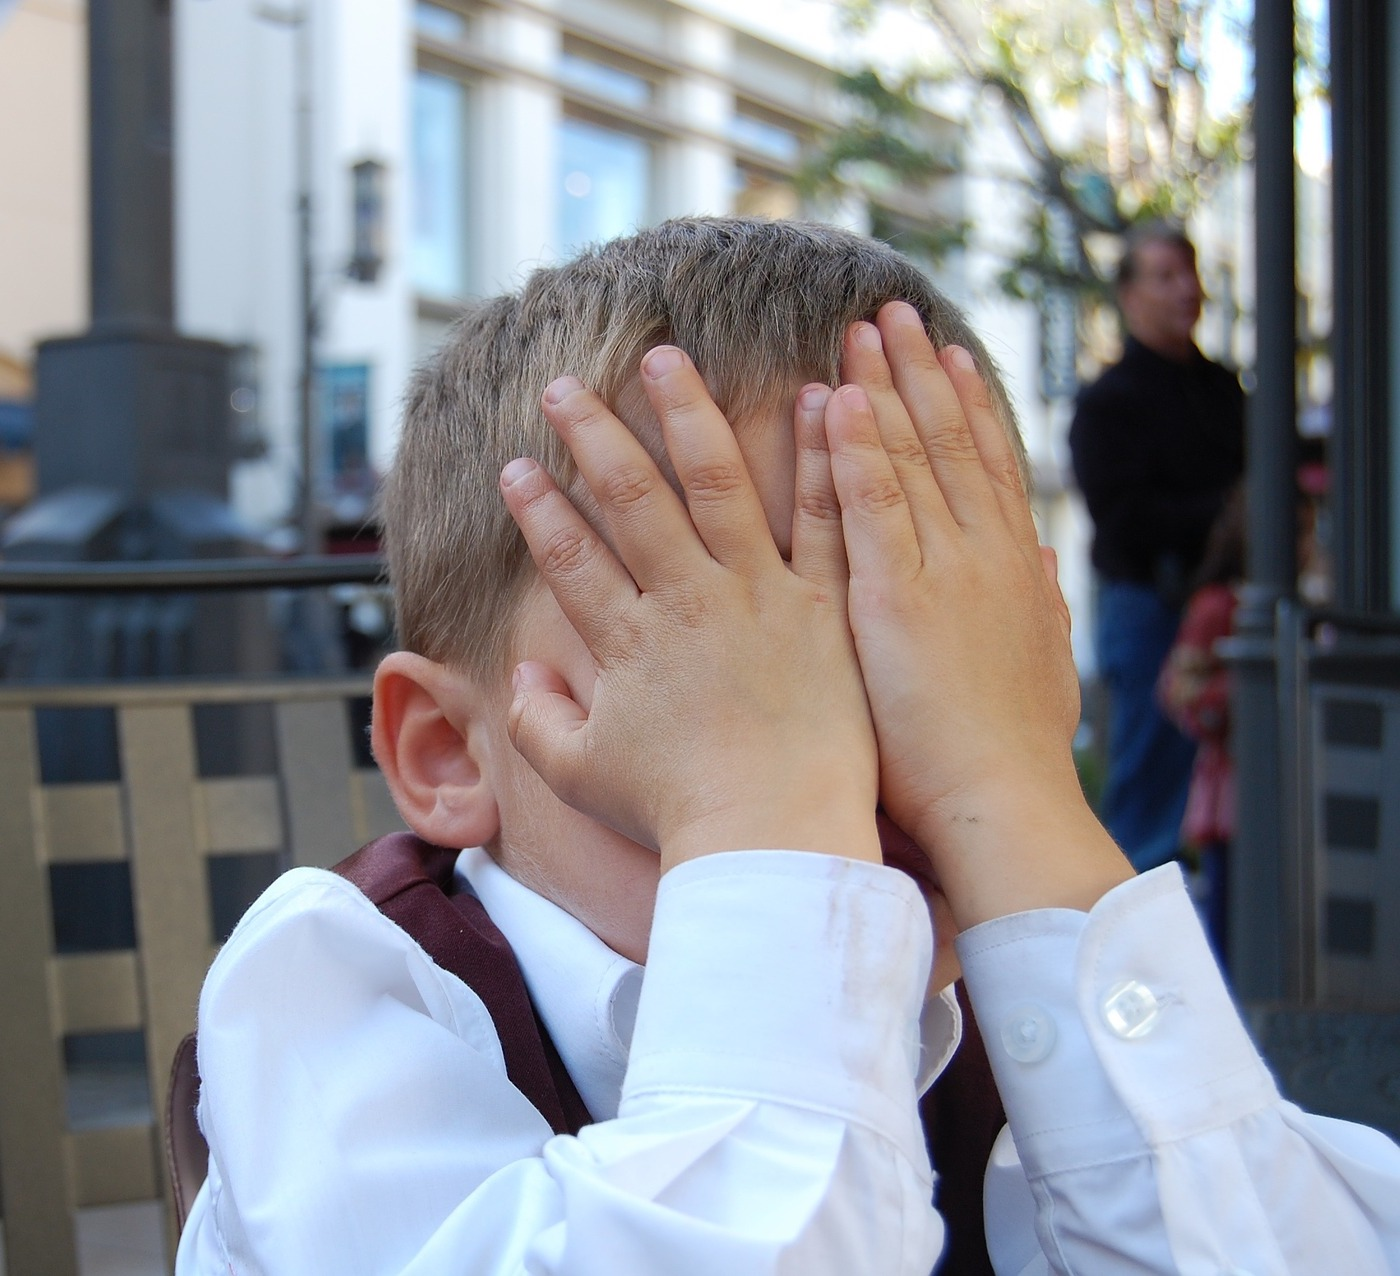 Young boy covering his face in shame